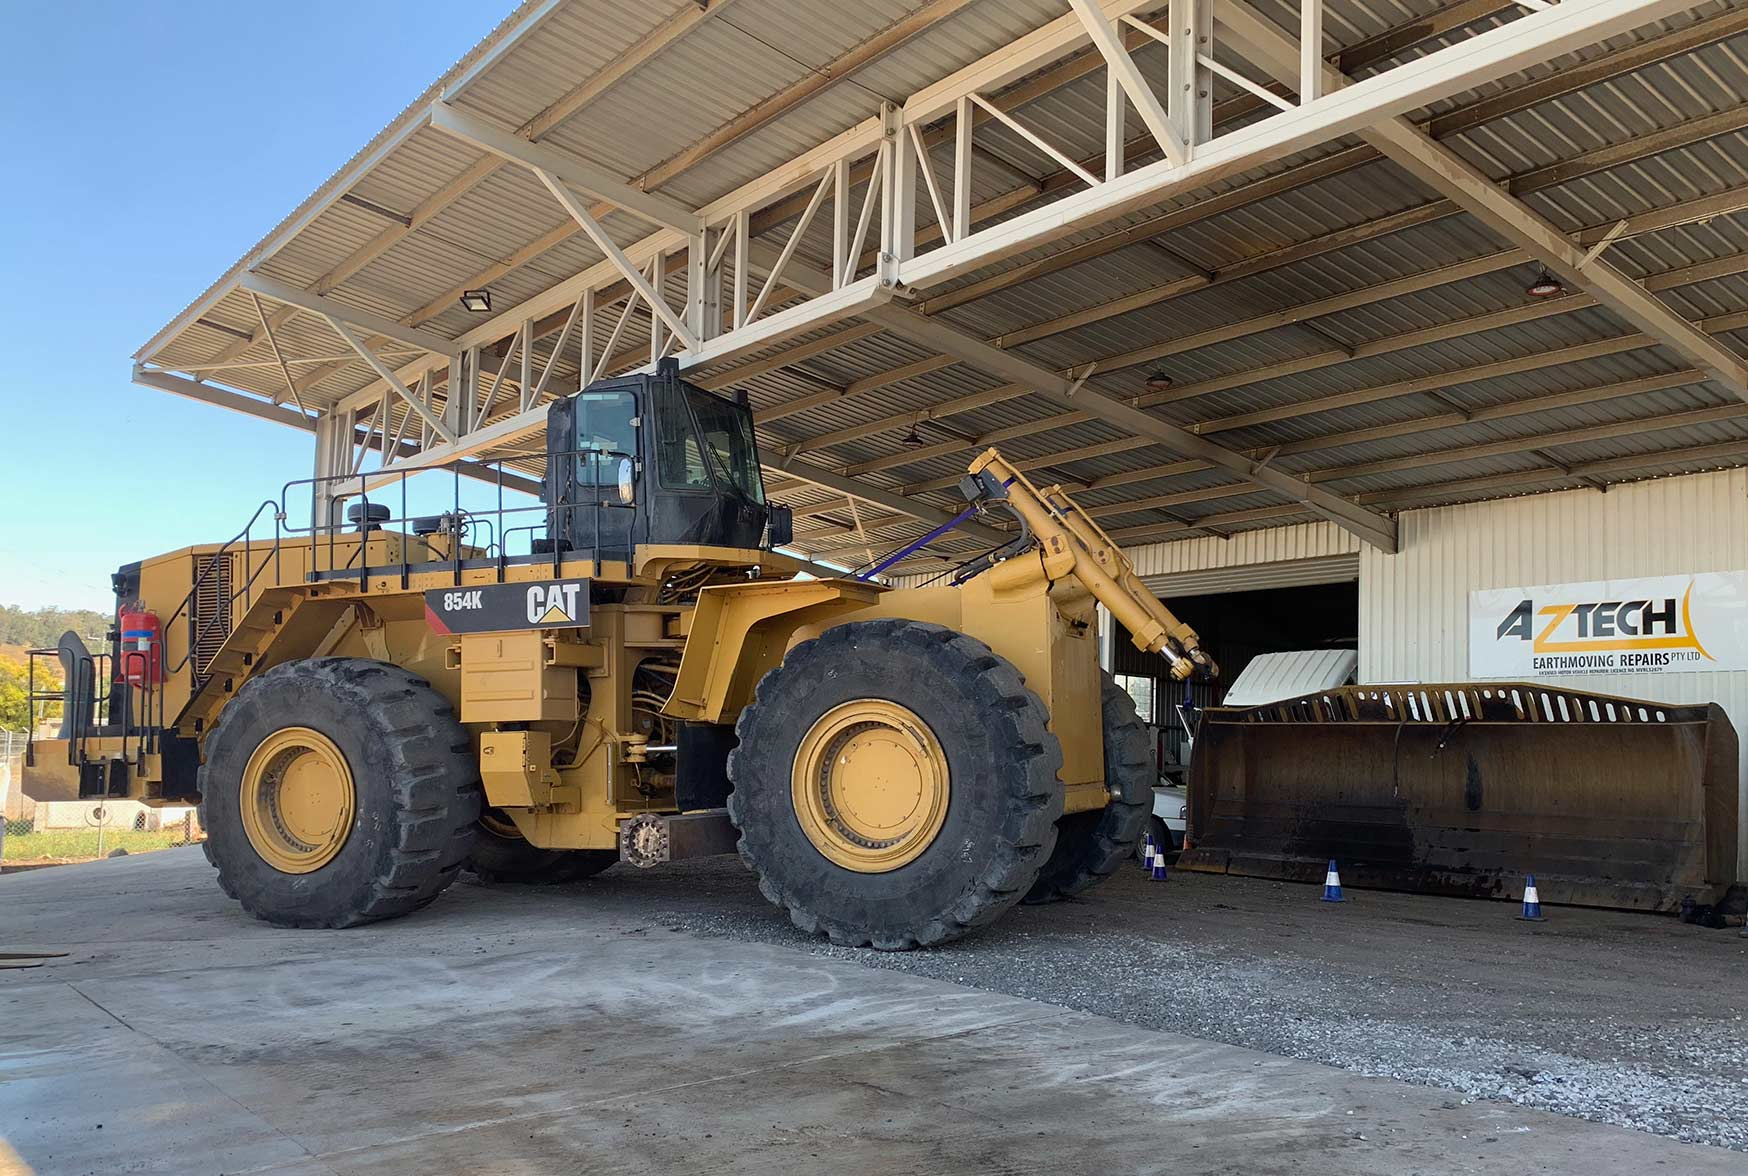 854K Wheel Dozers parked at Atech